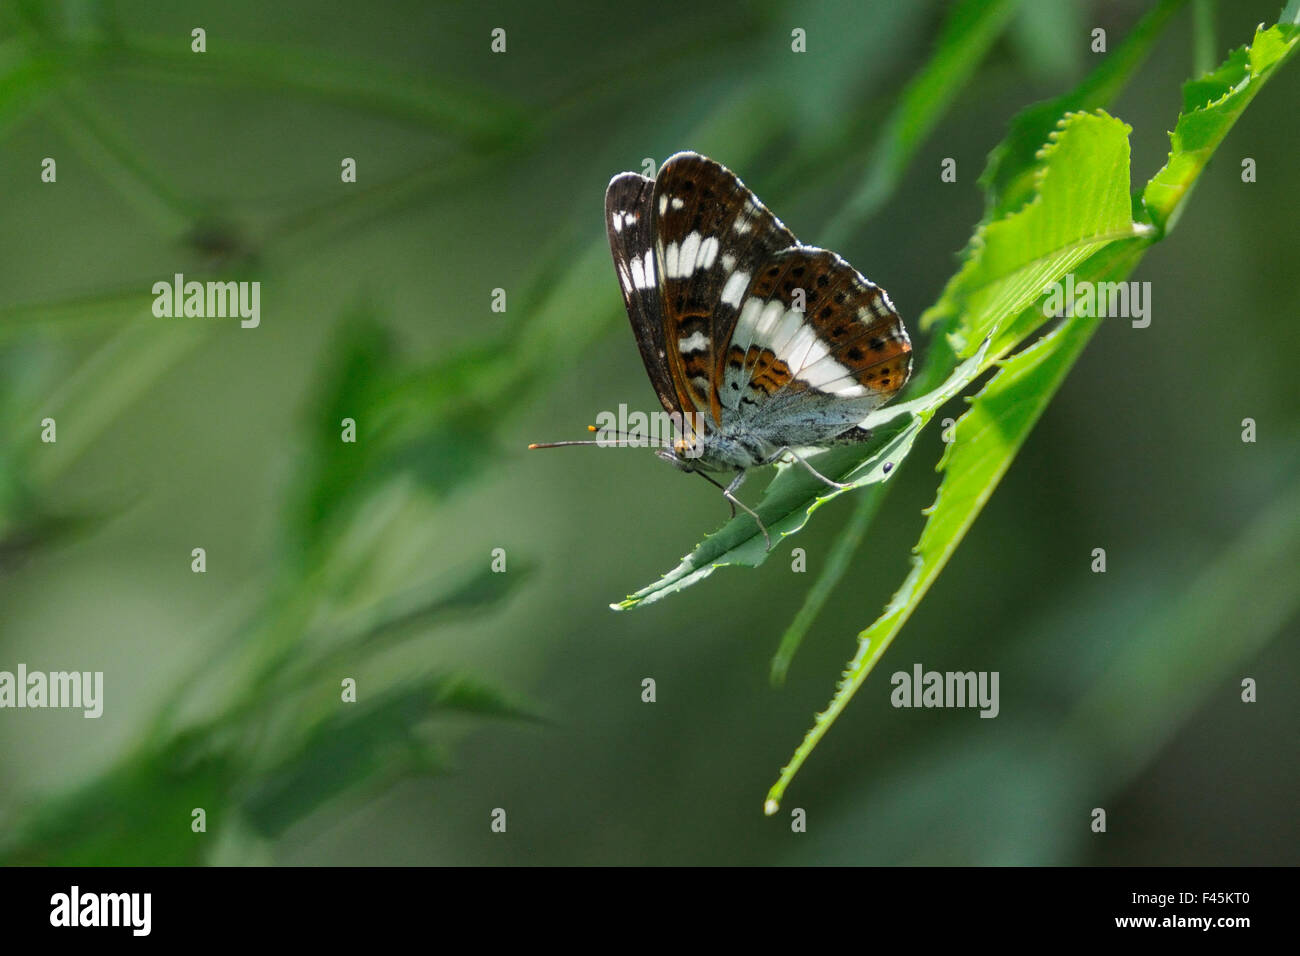 Male White admiral butterfly (Limenitis camilla) standing on sunlit leaves, guarding its territory and looking out - Stock Image